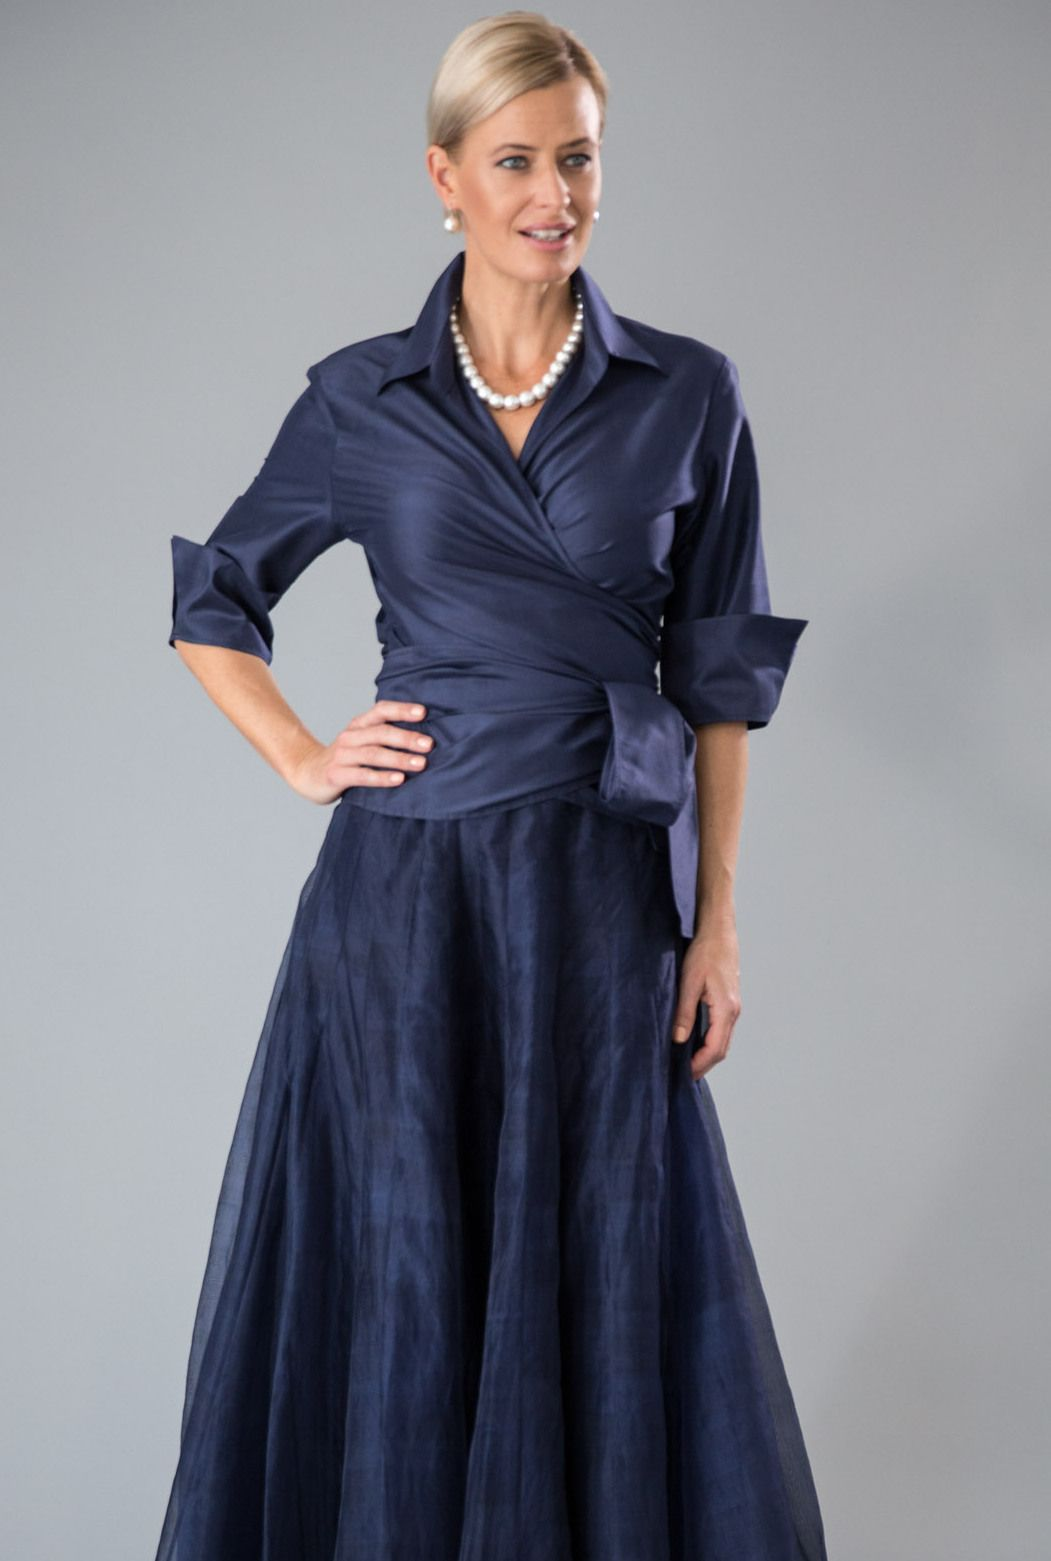 b31d1e0ebb7 Living Silk - specialising in dresses and two piece outfits with sleeves  for the modern and elegant mother of the bride and mother of the groom.